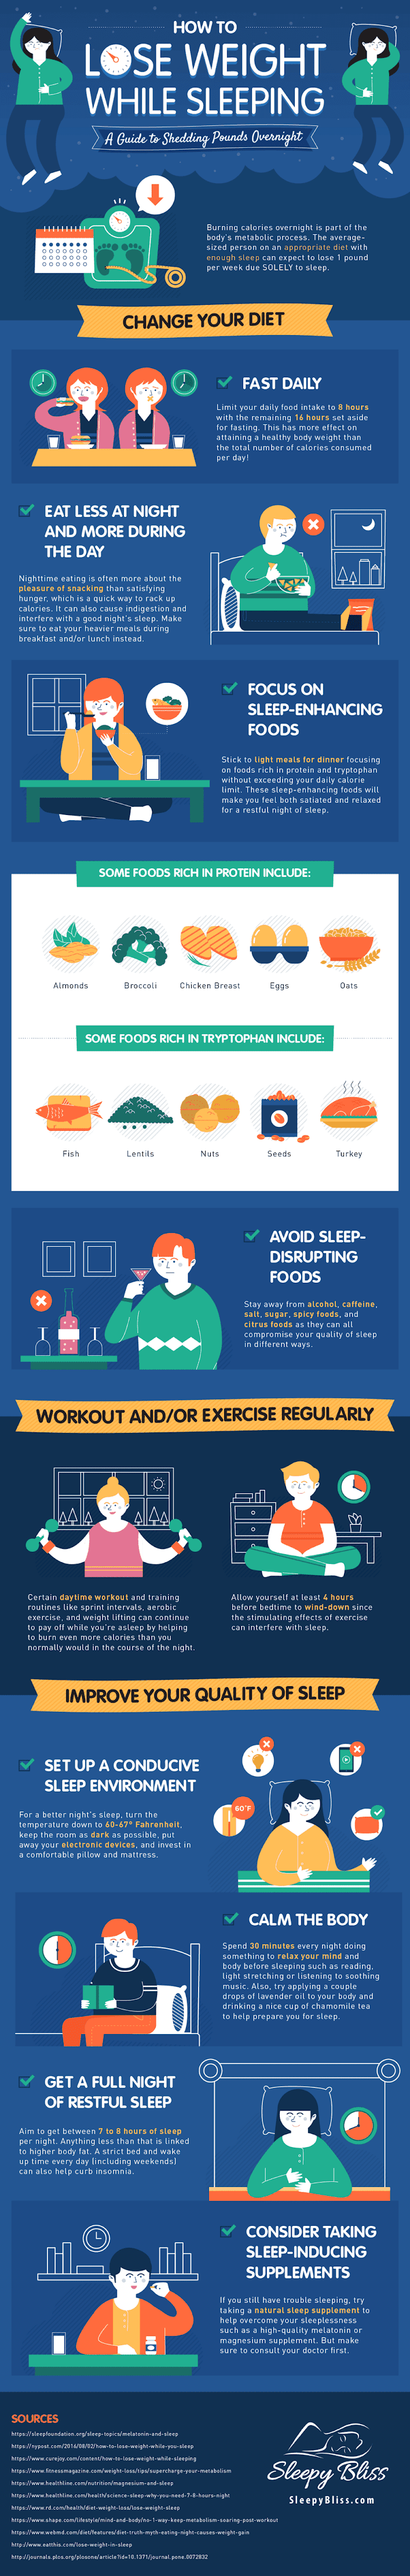 How To Lose Weight While Sleeping #infographic #Sleep #Sleeping Guide #Lose Weight #Weight Loss